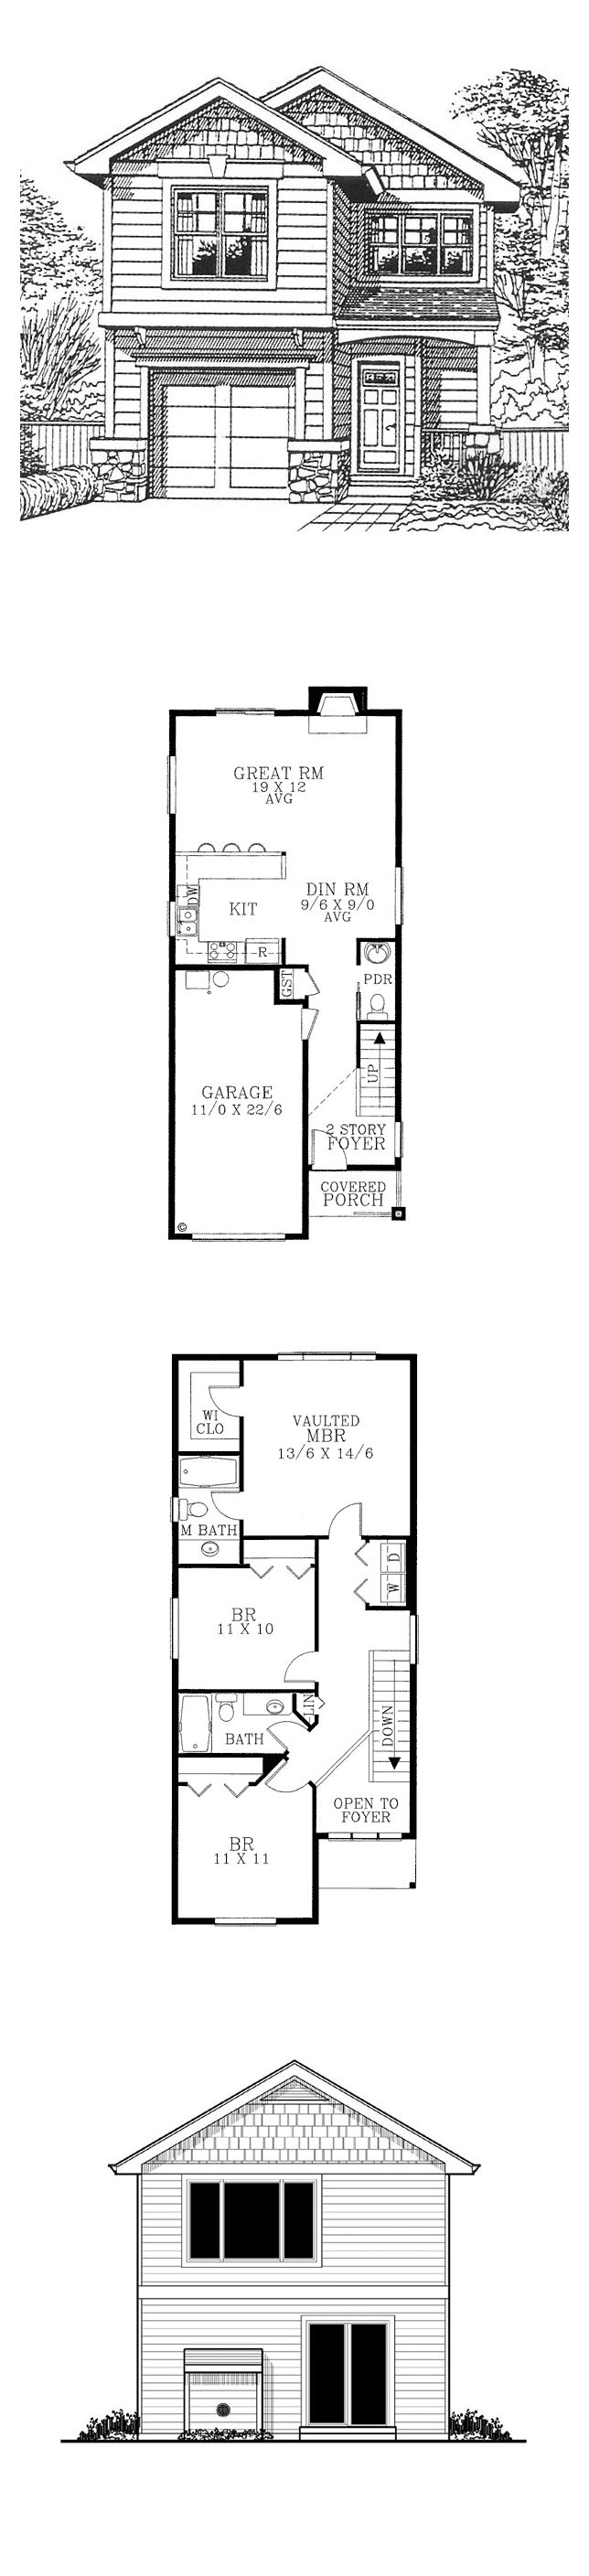 Narrow lot home plan 91470 total living area 1400 sq for 5 bedroom house plans narrow lot